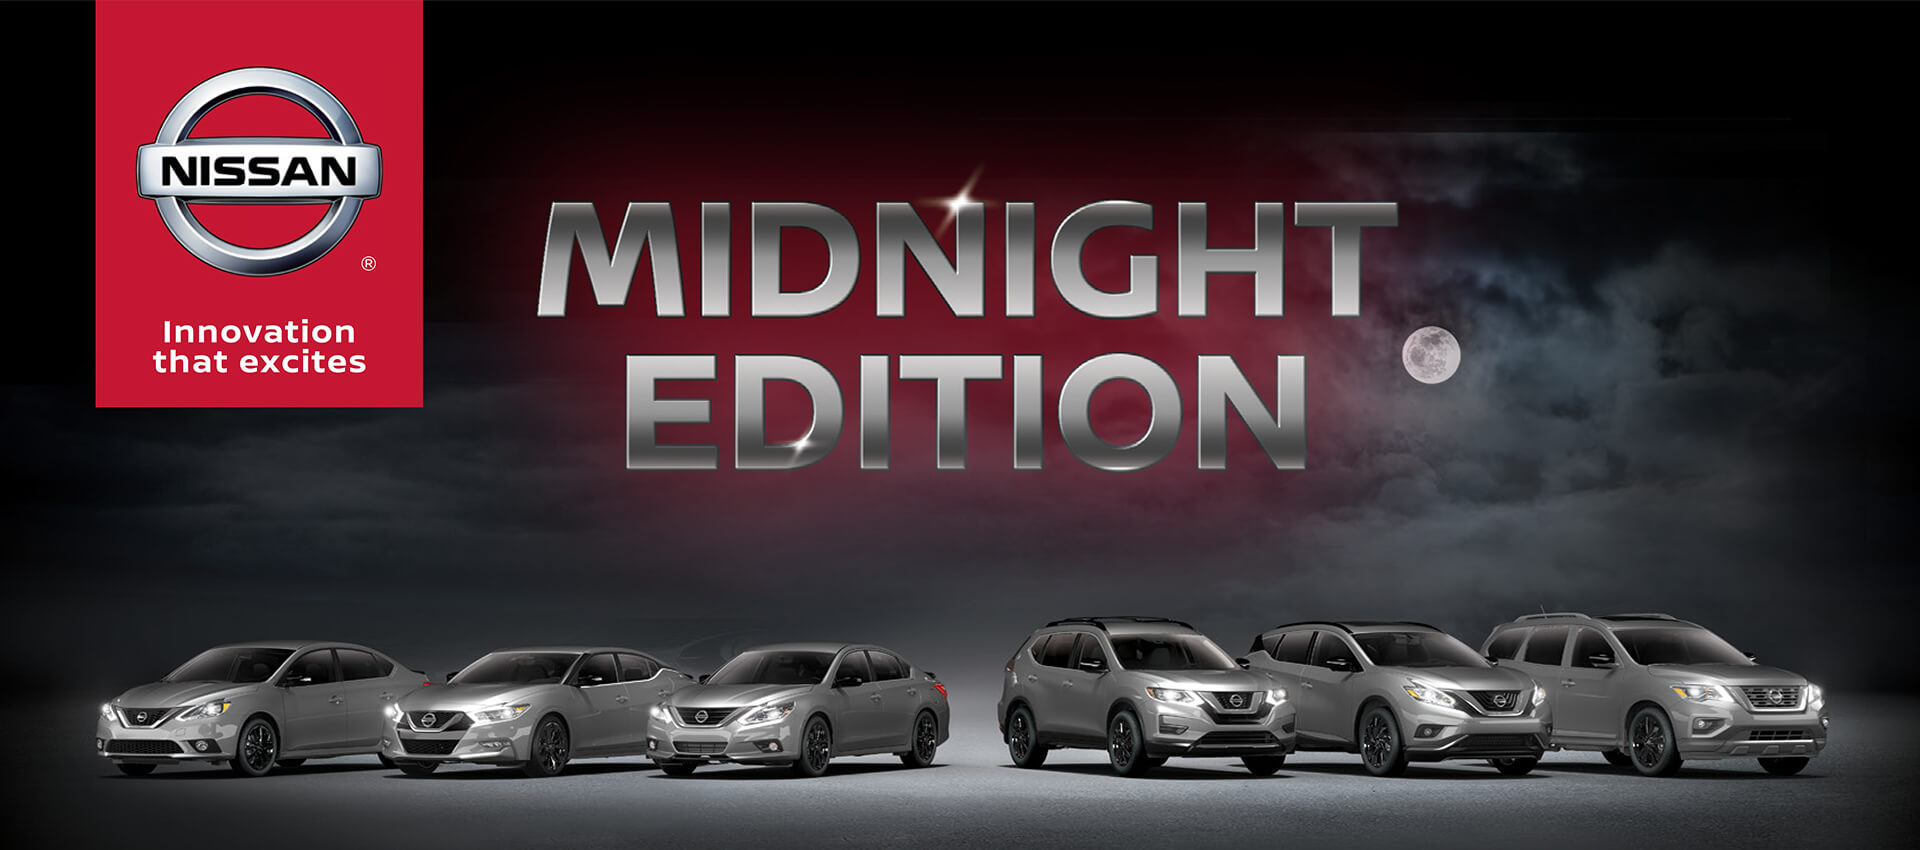 Midnight Edition